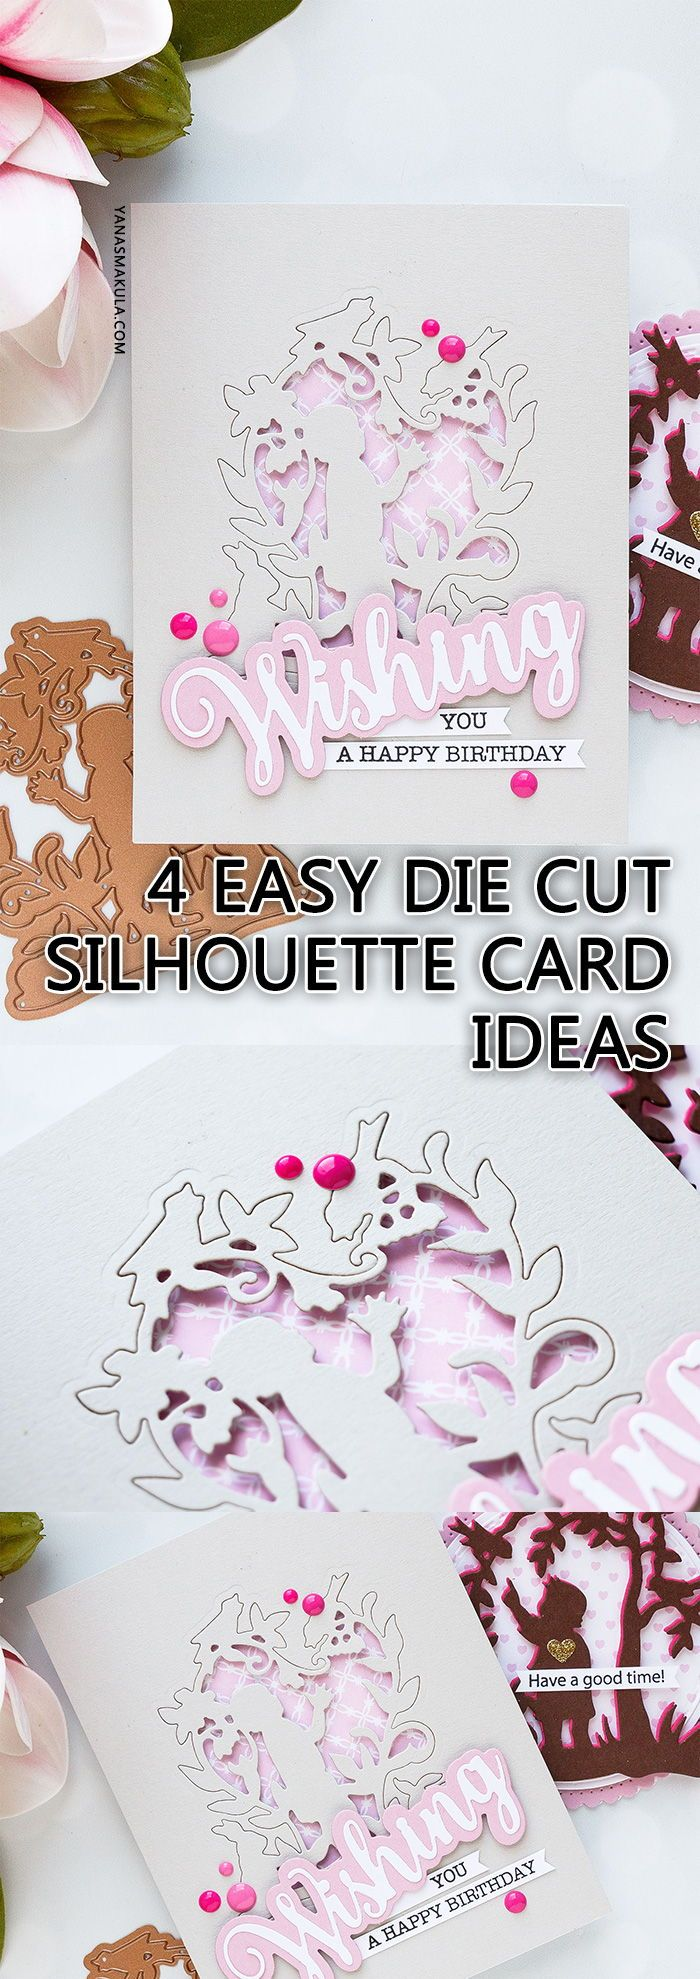 Easy handmade silhouette card ideas to try today die cutting ideas